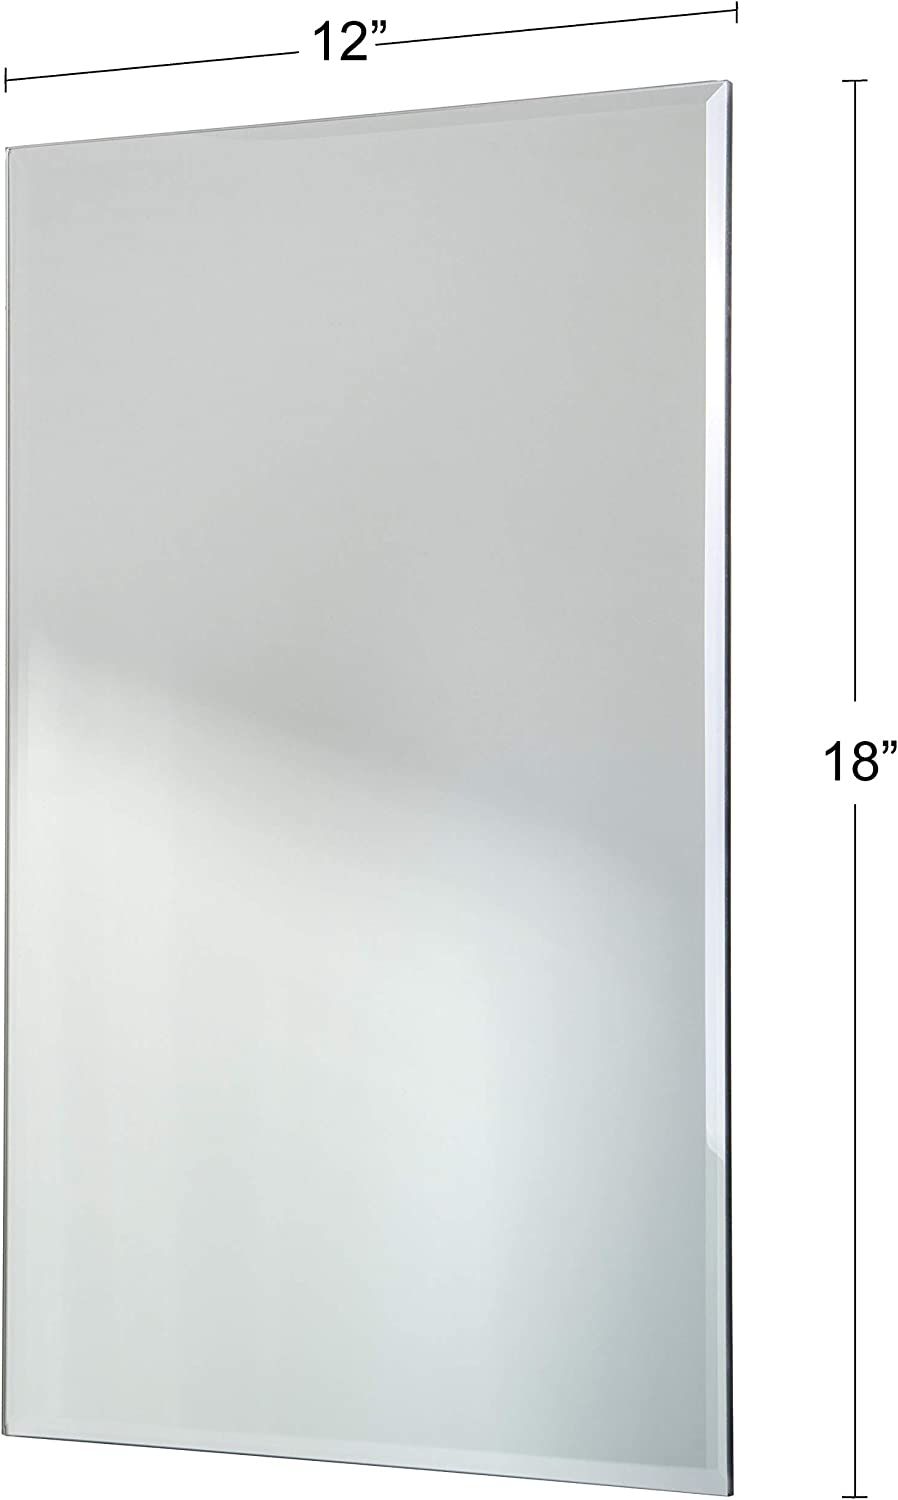 12x18 Inches Frameless with Beveled Edge Modern Minimalist Rectangular Mirror Large